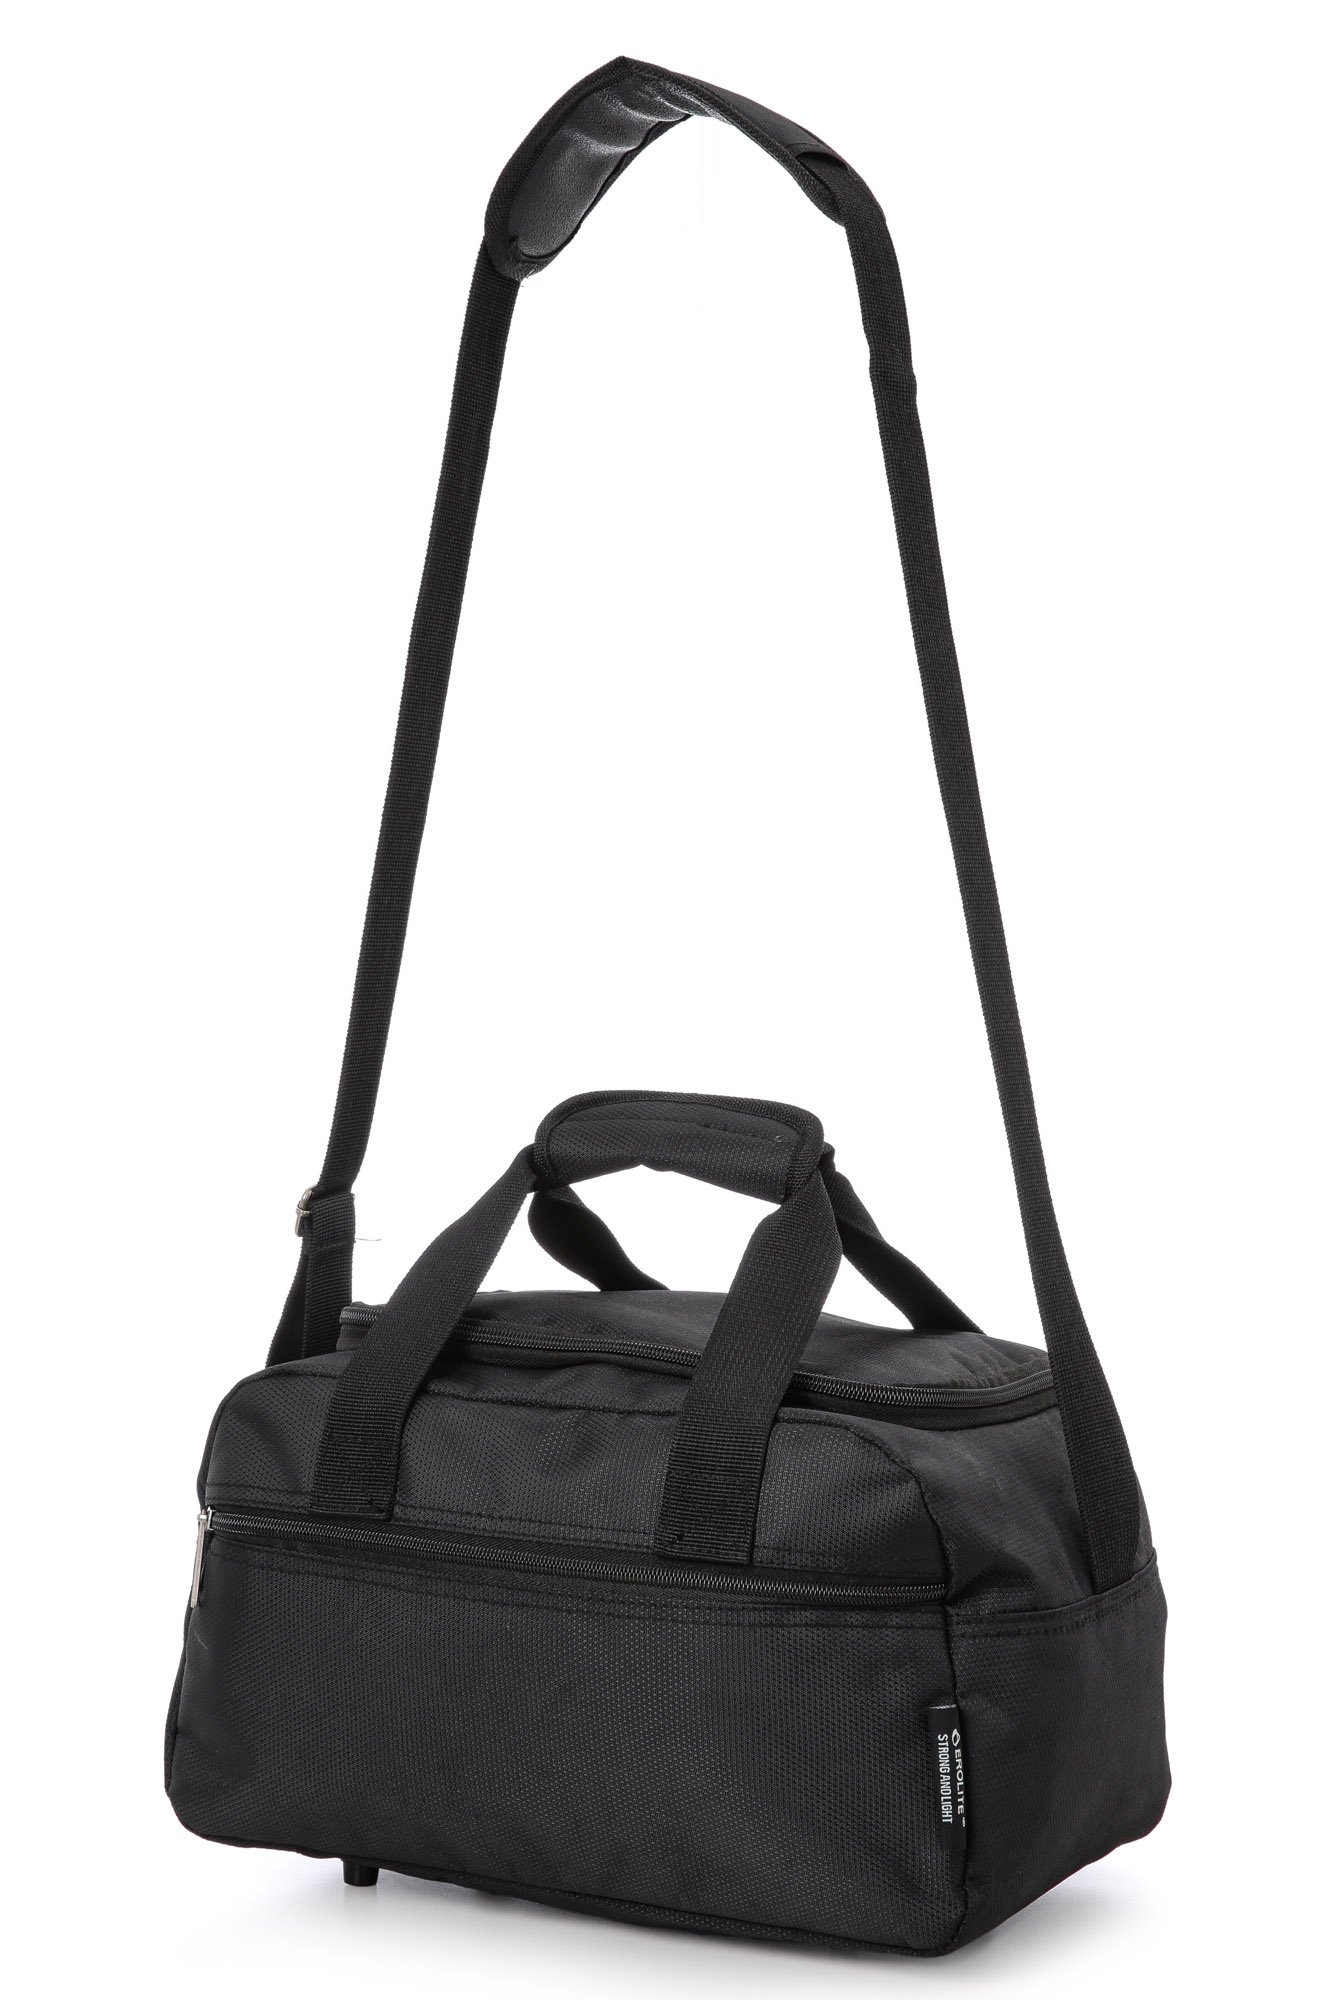 71NZL6k o%2BL - Aerolite Holdall Maximum Ryanair Hand Luggage Cabin Sized Flight Shoulder Bag Equipaje de Mano, 35 cm, 14 Liters, Negro…